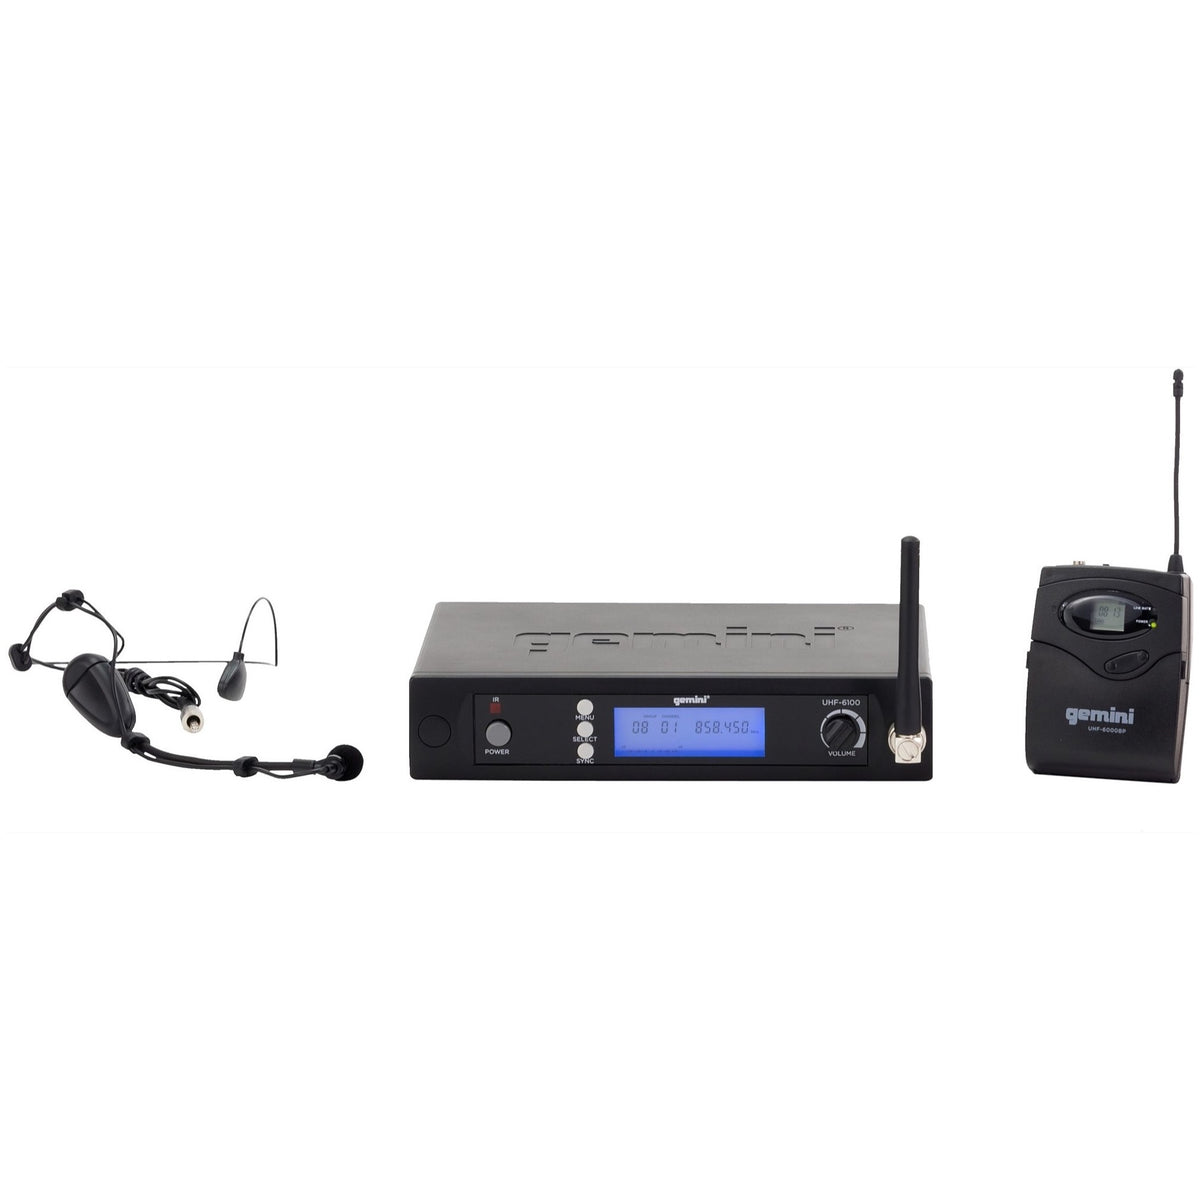 Gemini UHF 6100HL Single Wireless Headset Microphone System